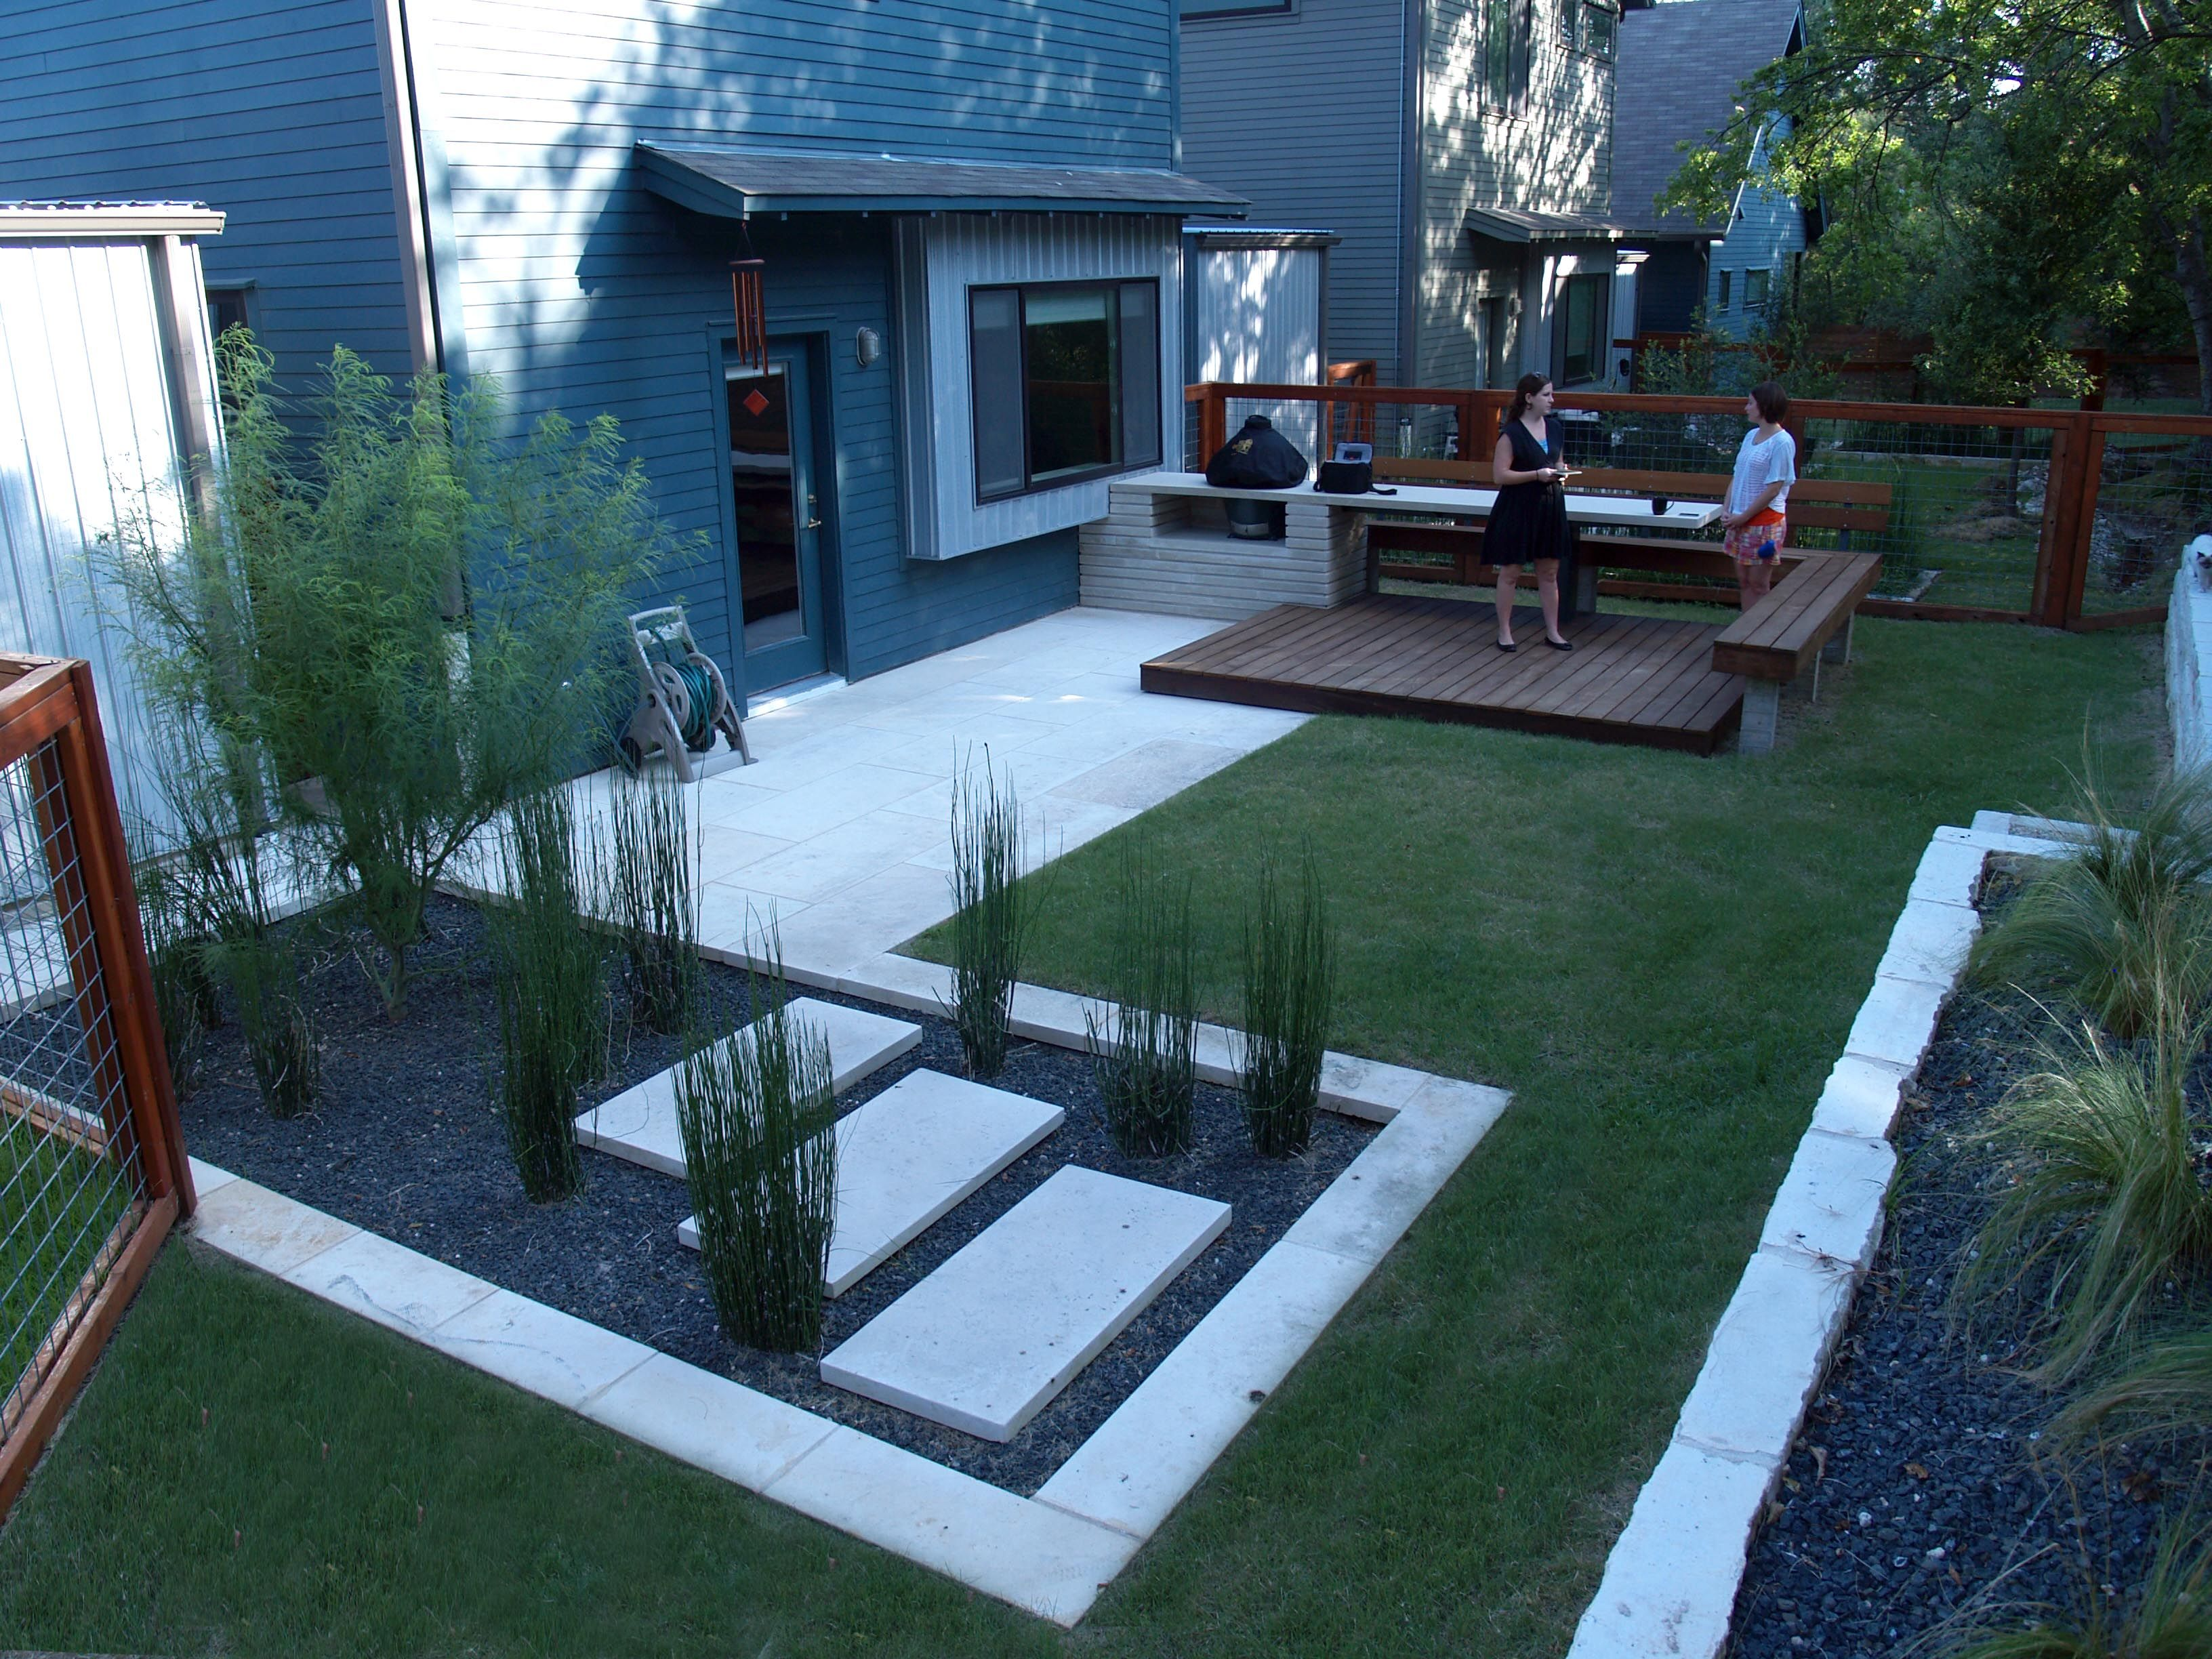 Mesmerizing Modern Landscaping Ideas For Small Backyards Pics Design  Inspiration